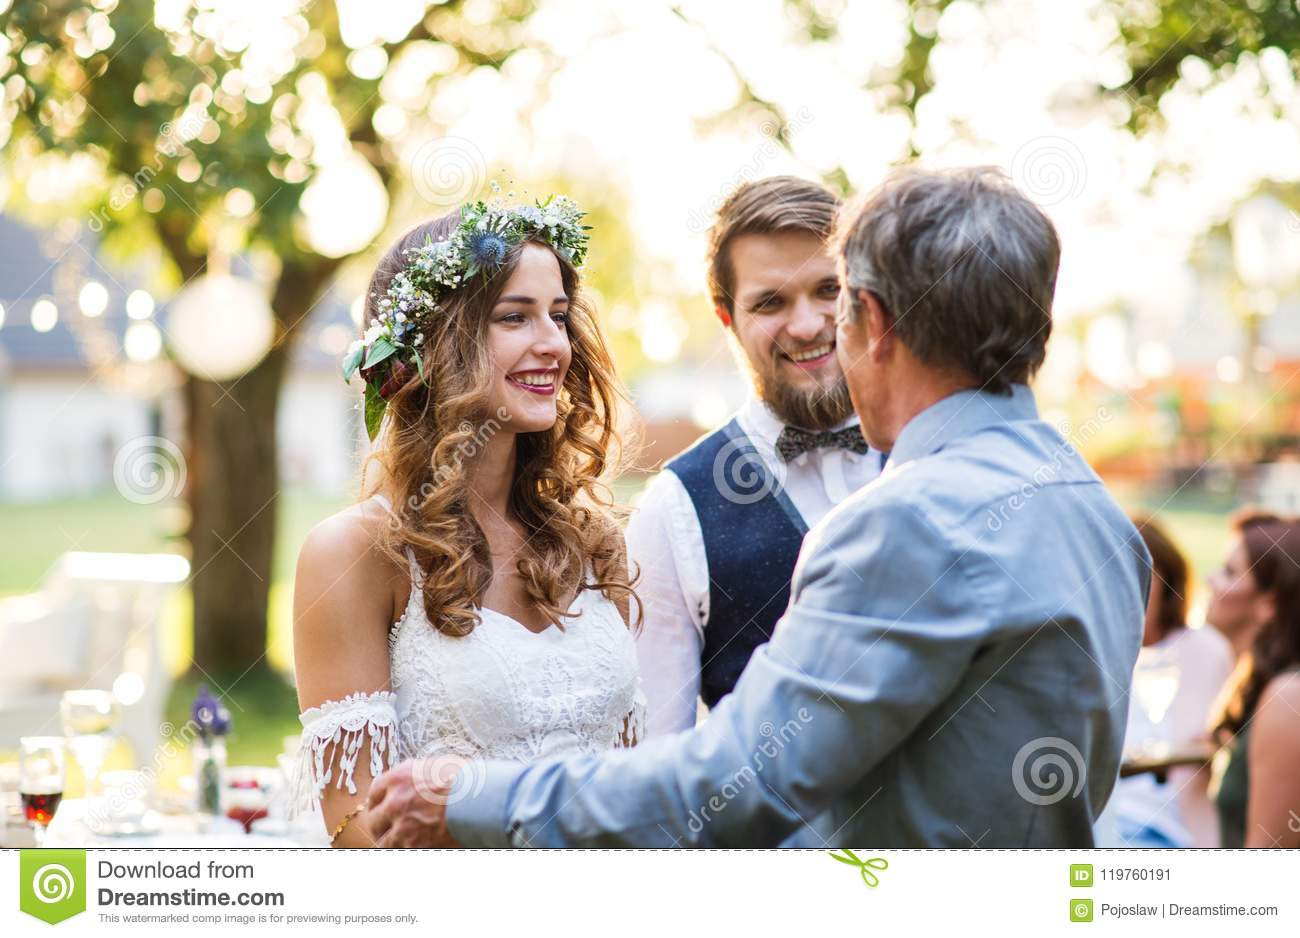 a father congratulating bride and groom at wedding reception in the backyard